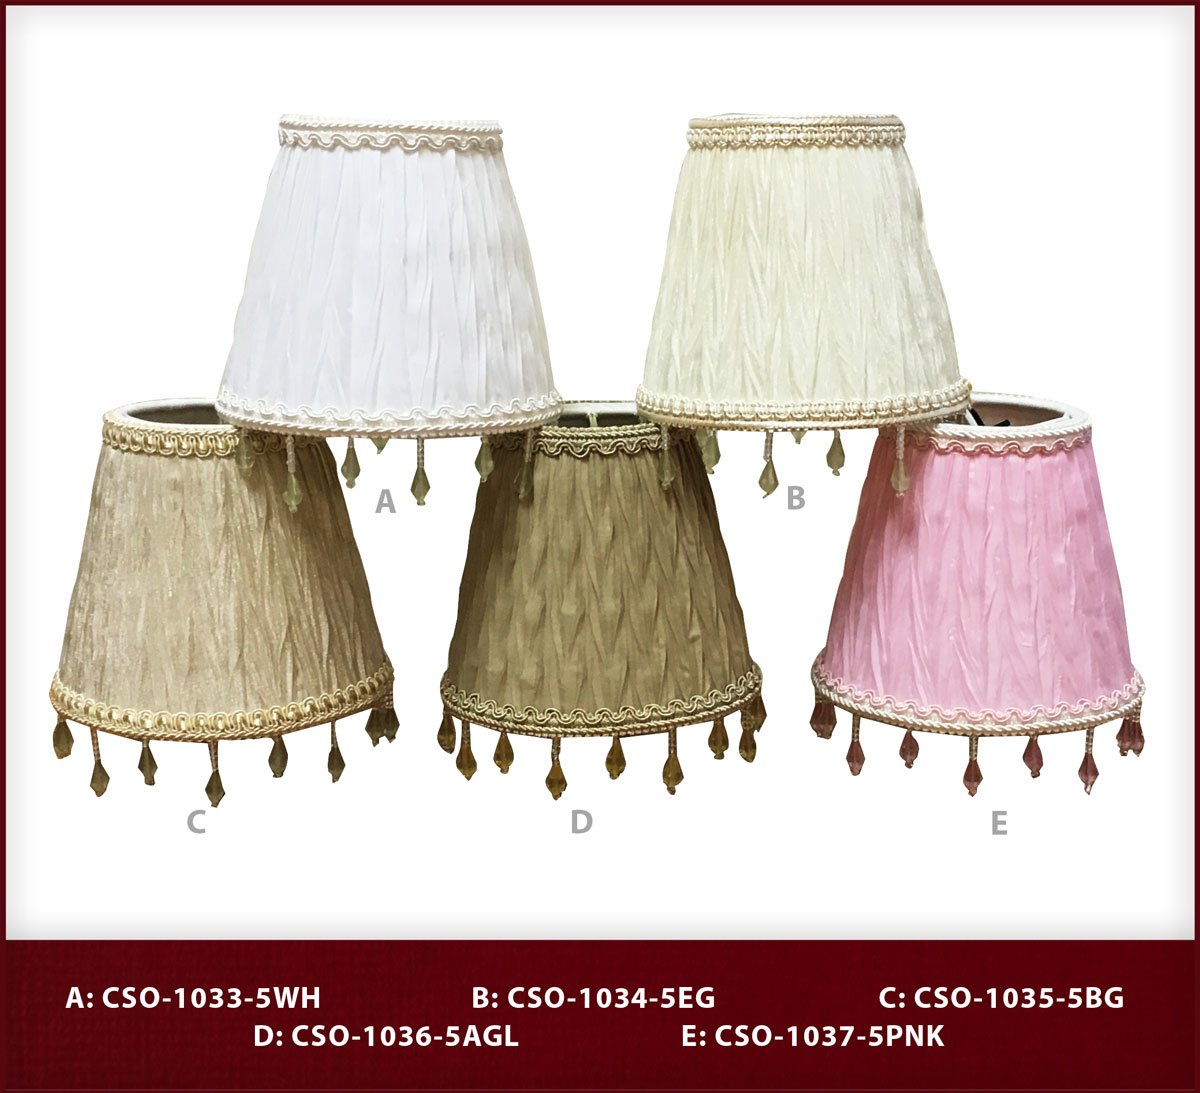 Ruche Pleated Empire Clip-On 3 x 5 x 4.5 Inc CSO-1037-5PNK-6 Royal Designs Chandelier Lamp Shades Royal Designs Set of 6 6 Piece Pink